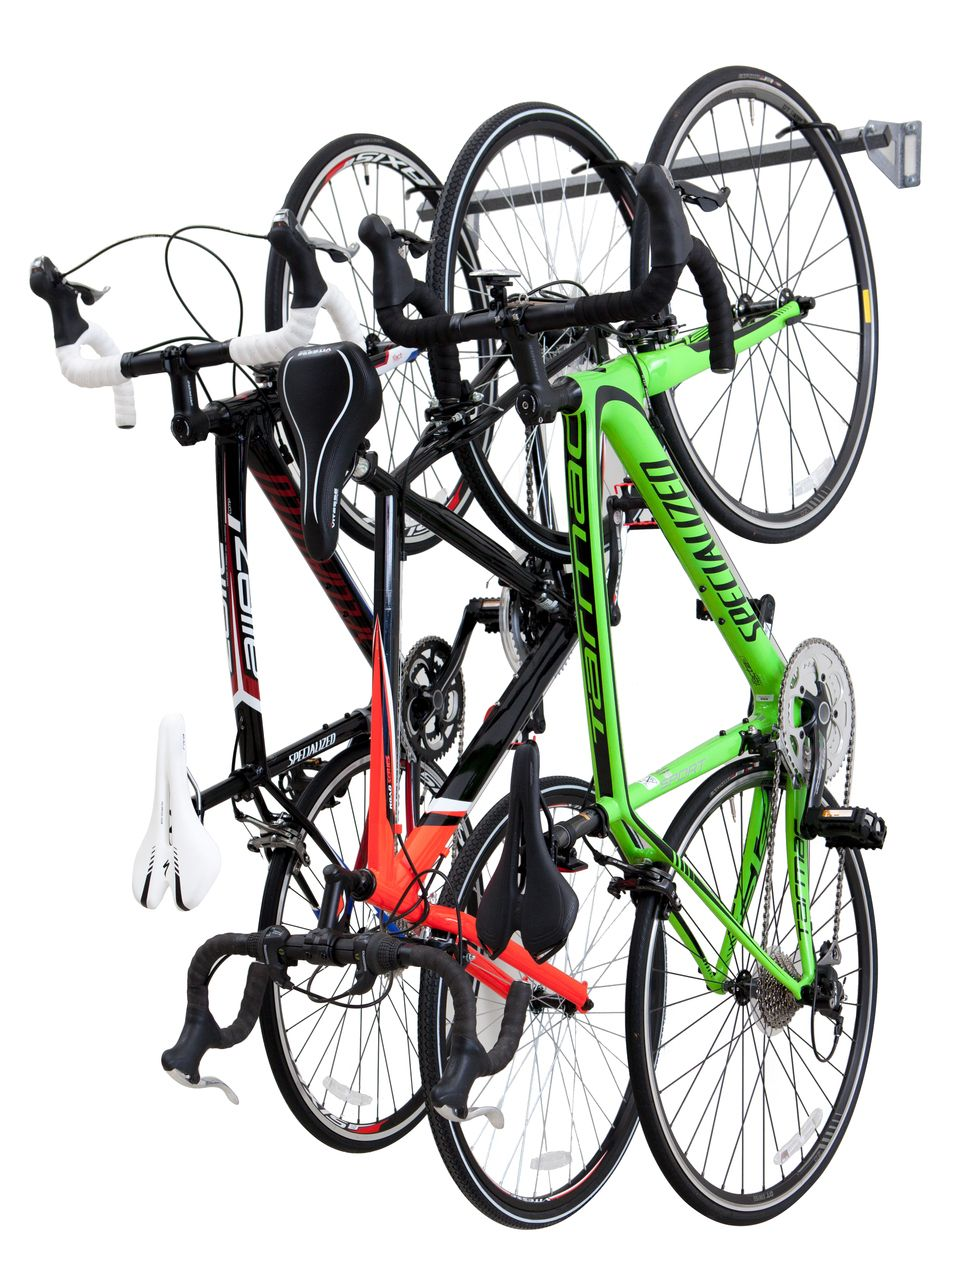 Garage Bike Storage (Holds 3) Free Shipping and Lifetime